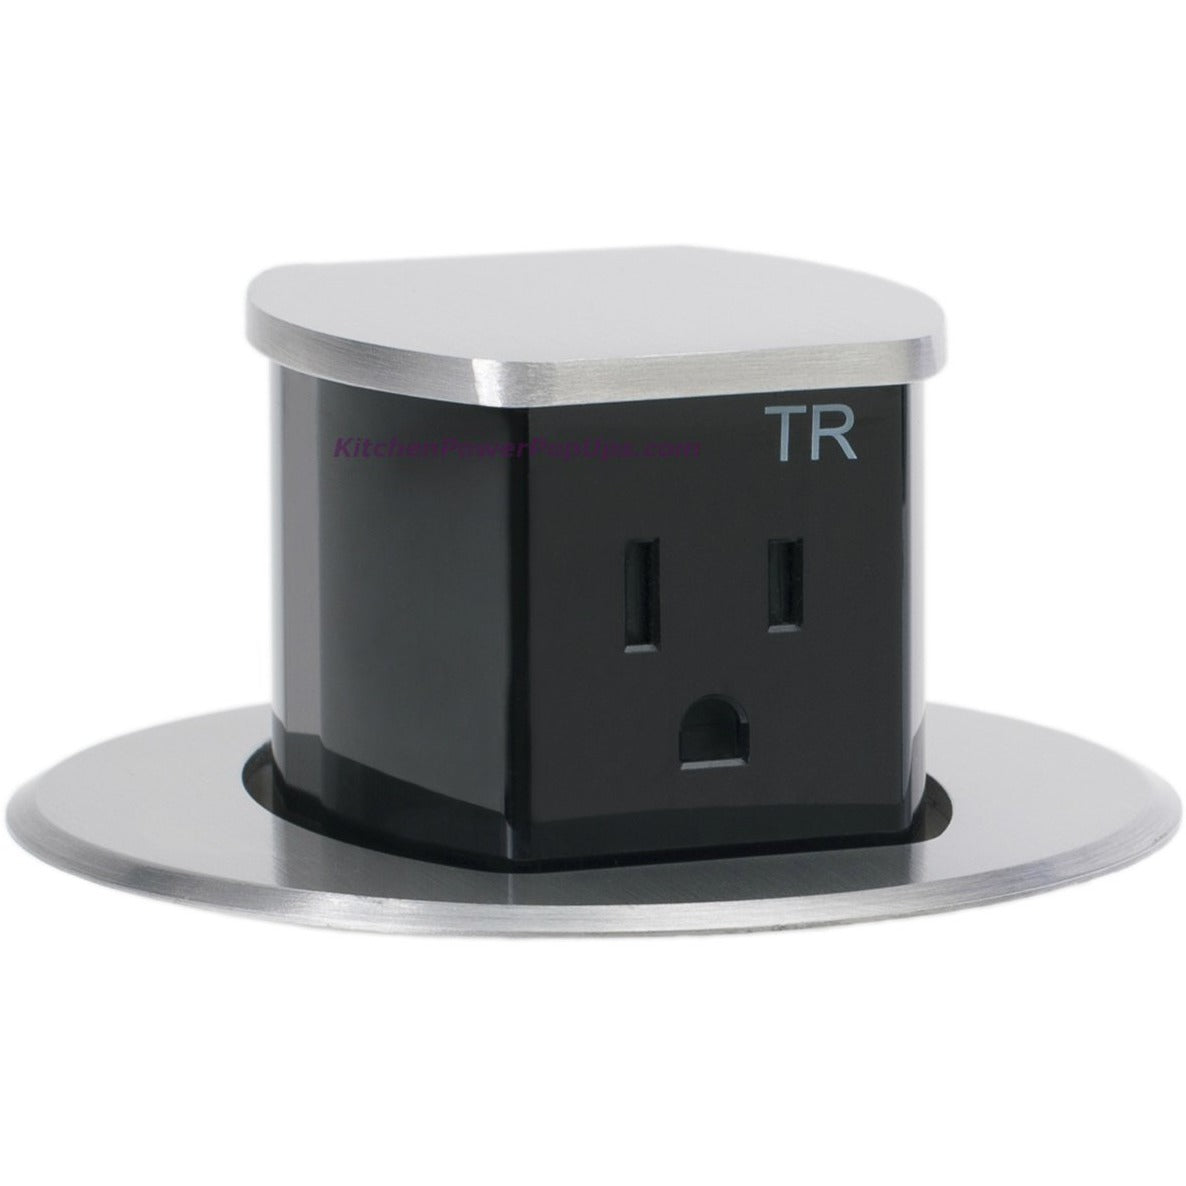 Hubbell RCT200ALU Waterproof Dual Sided Pop Up Counter Outlet ...